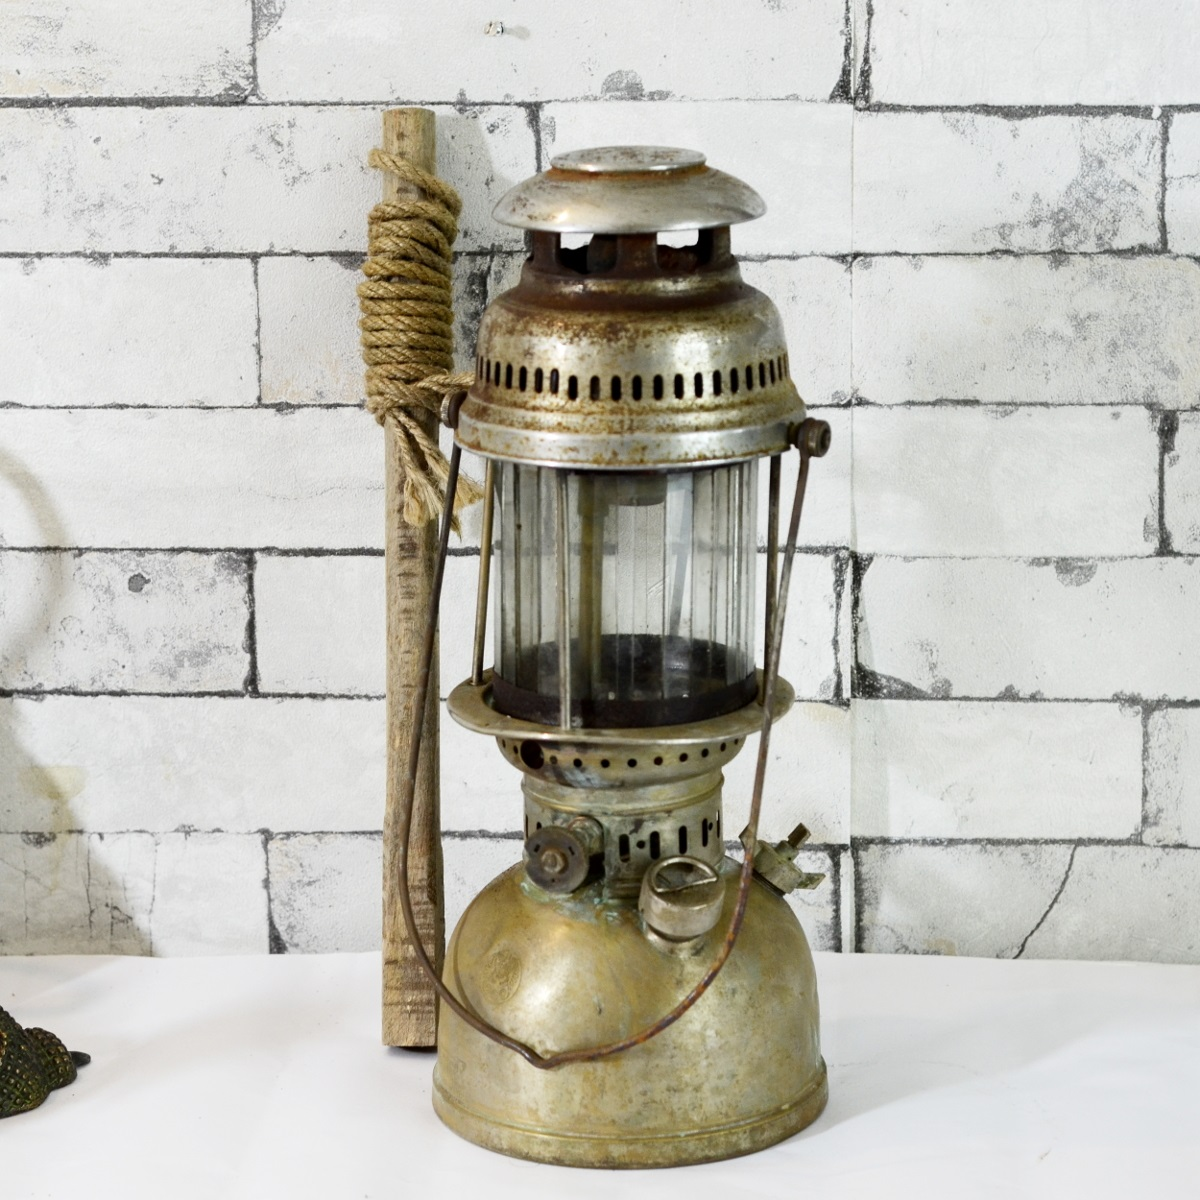 Antikcart Antique Original Petromax Hurricane Lamp decor collectible antique lamp